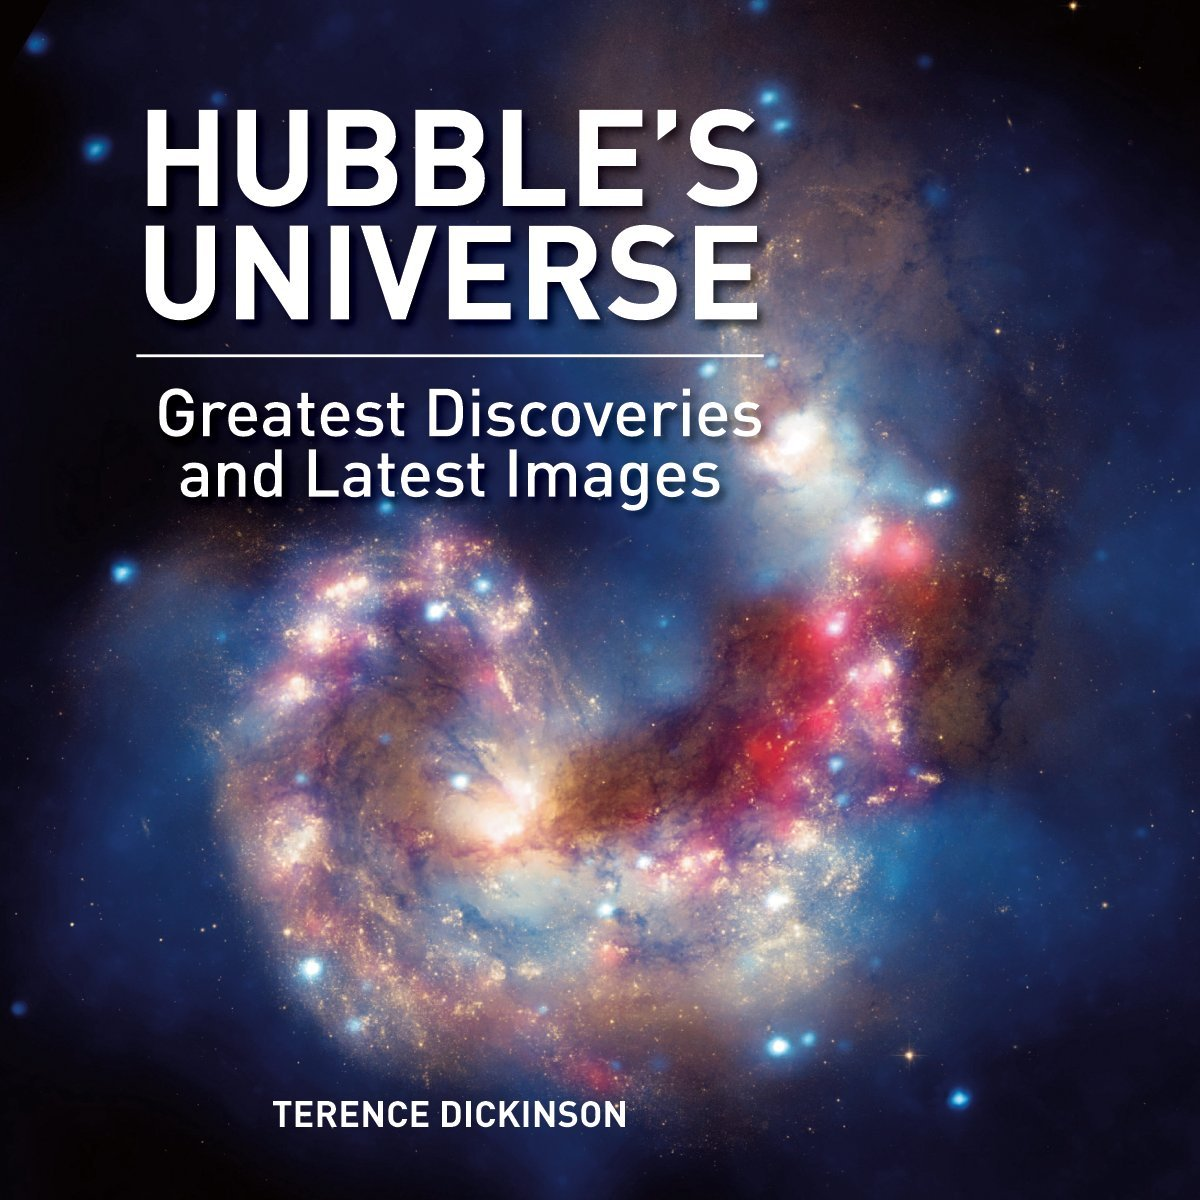 Download Hubble's Universe: Greatest Discoveries And Latest Images 